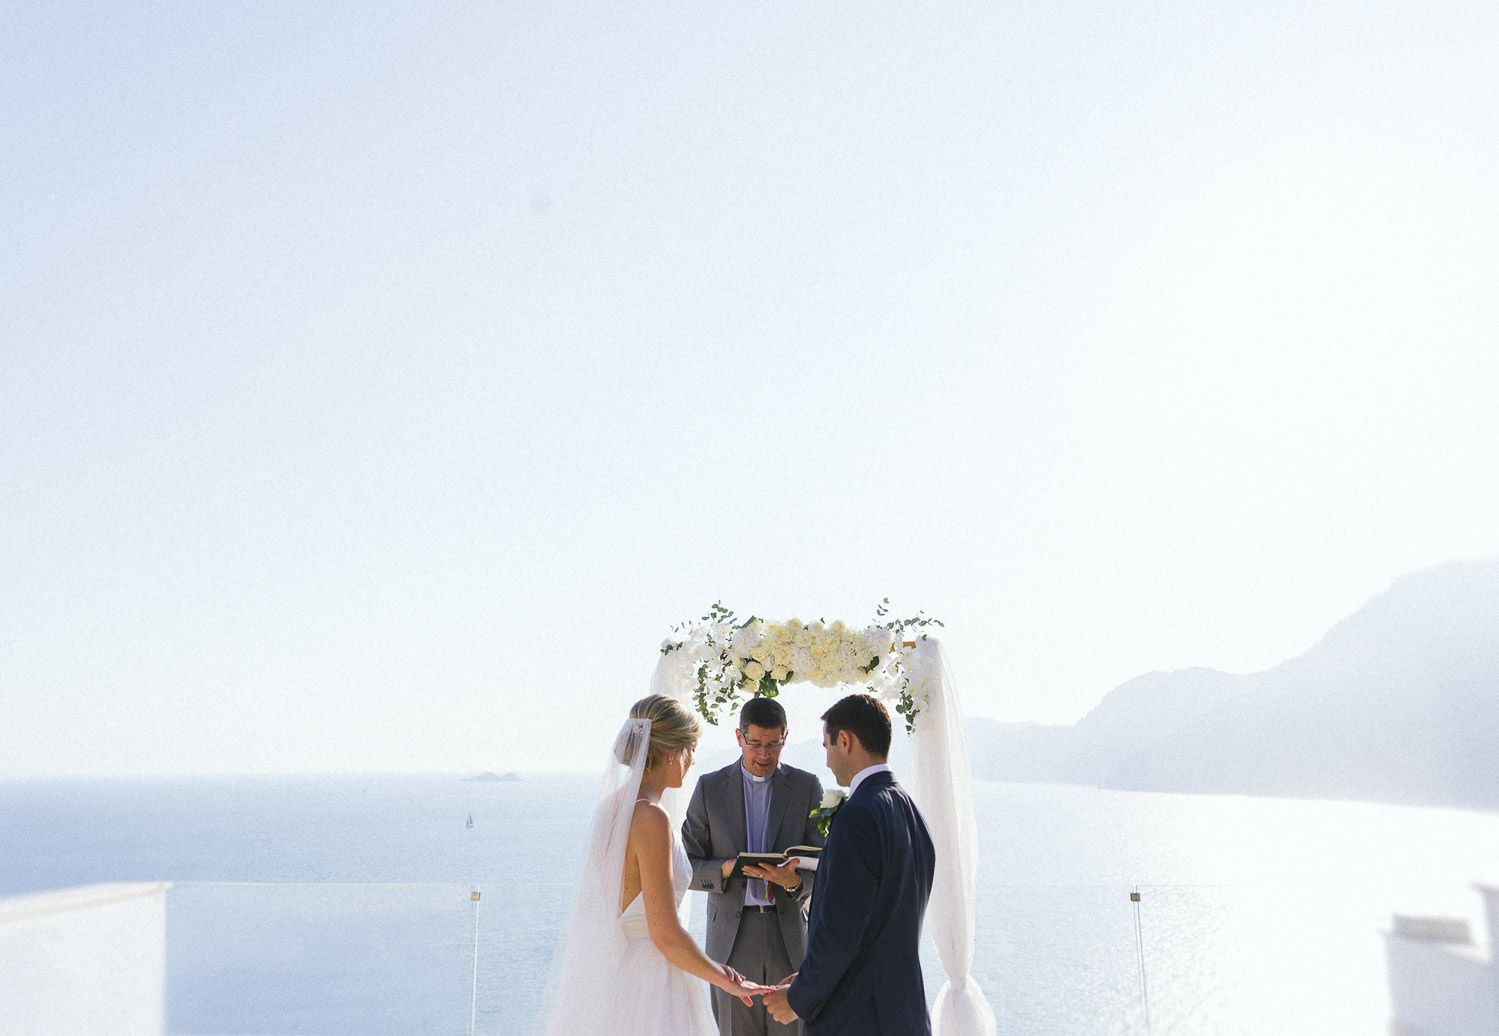 Romantic intimate wedding at luxury boutique hotel Casa Angelina - Photo: Camilla Anchisi - Amalfi Coast wedding photographer